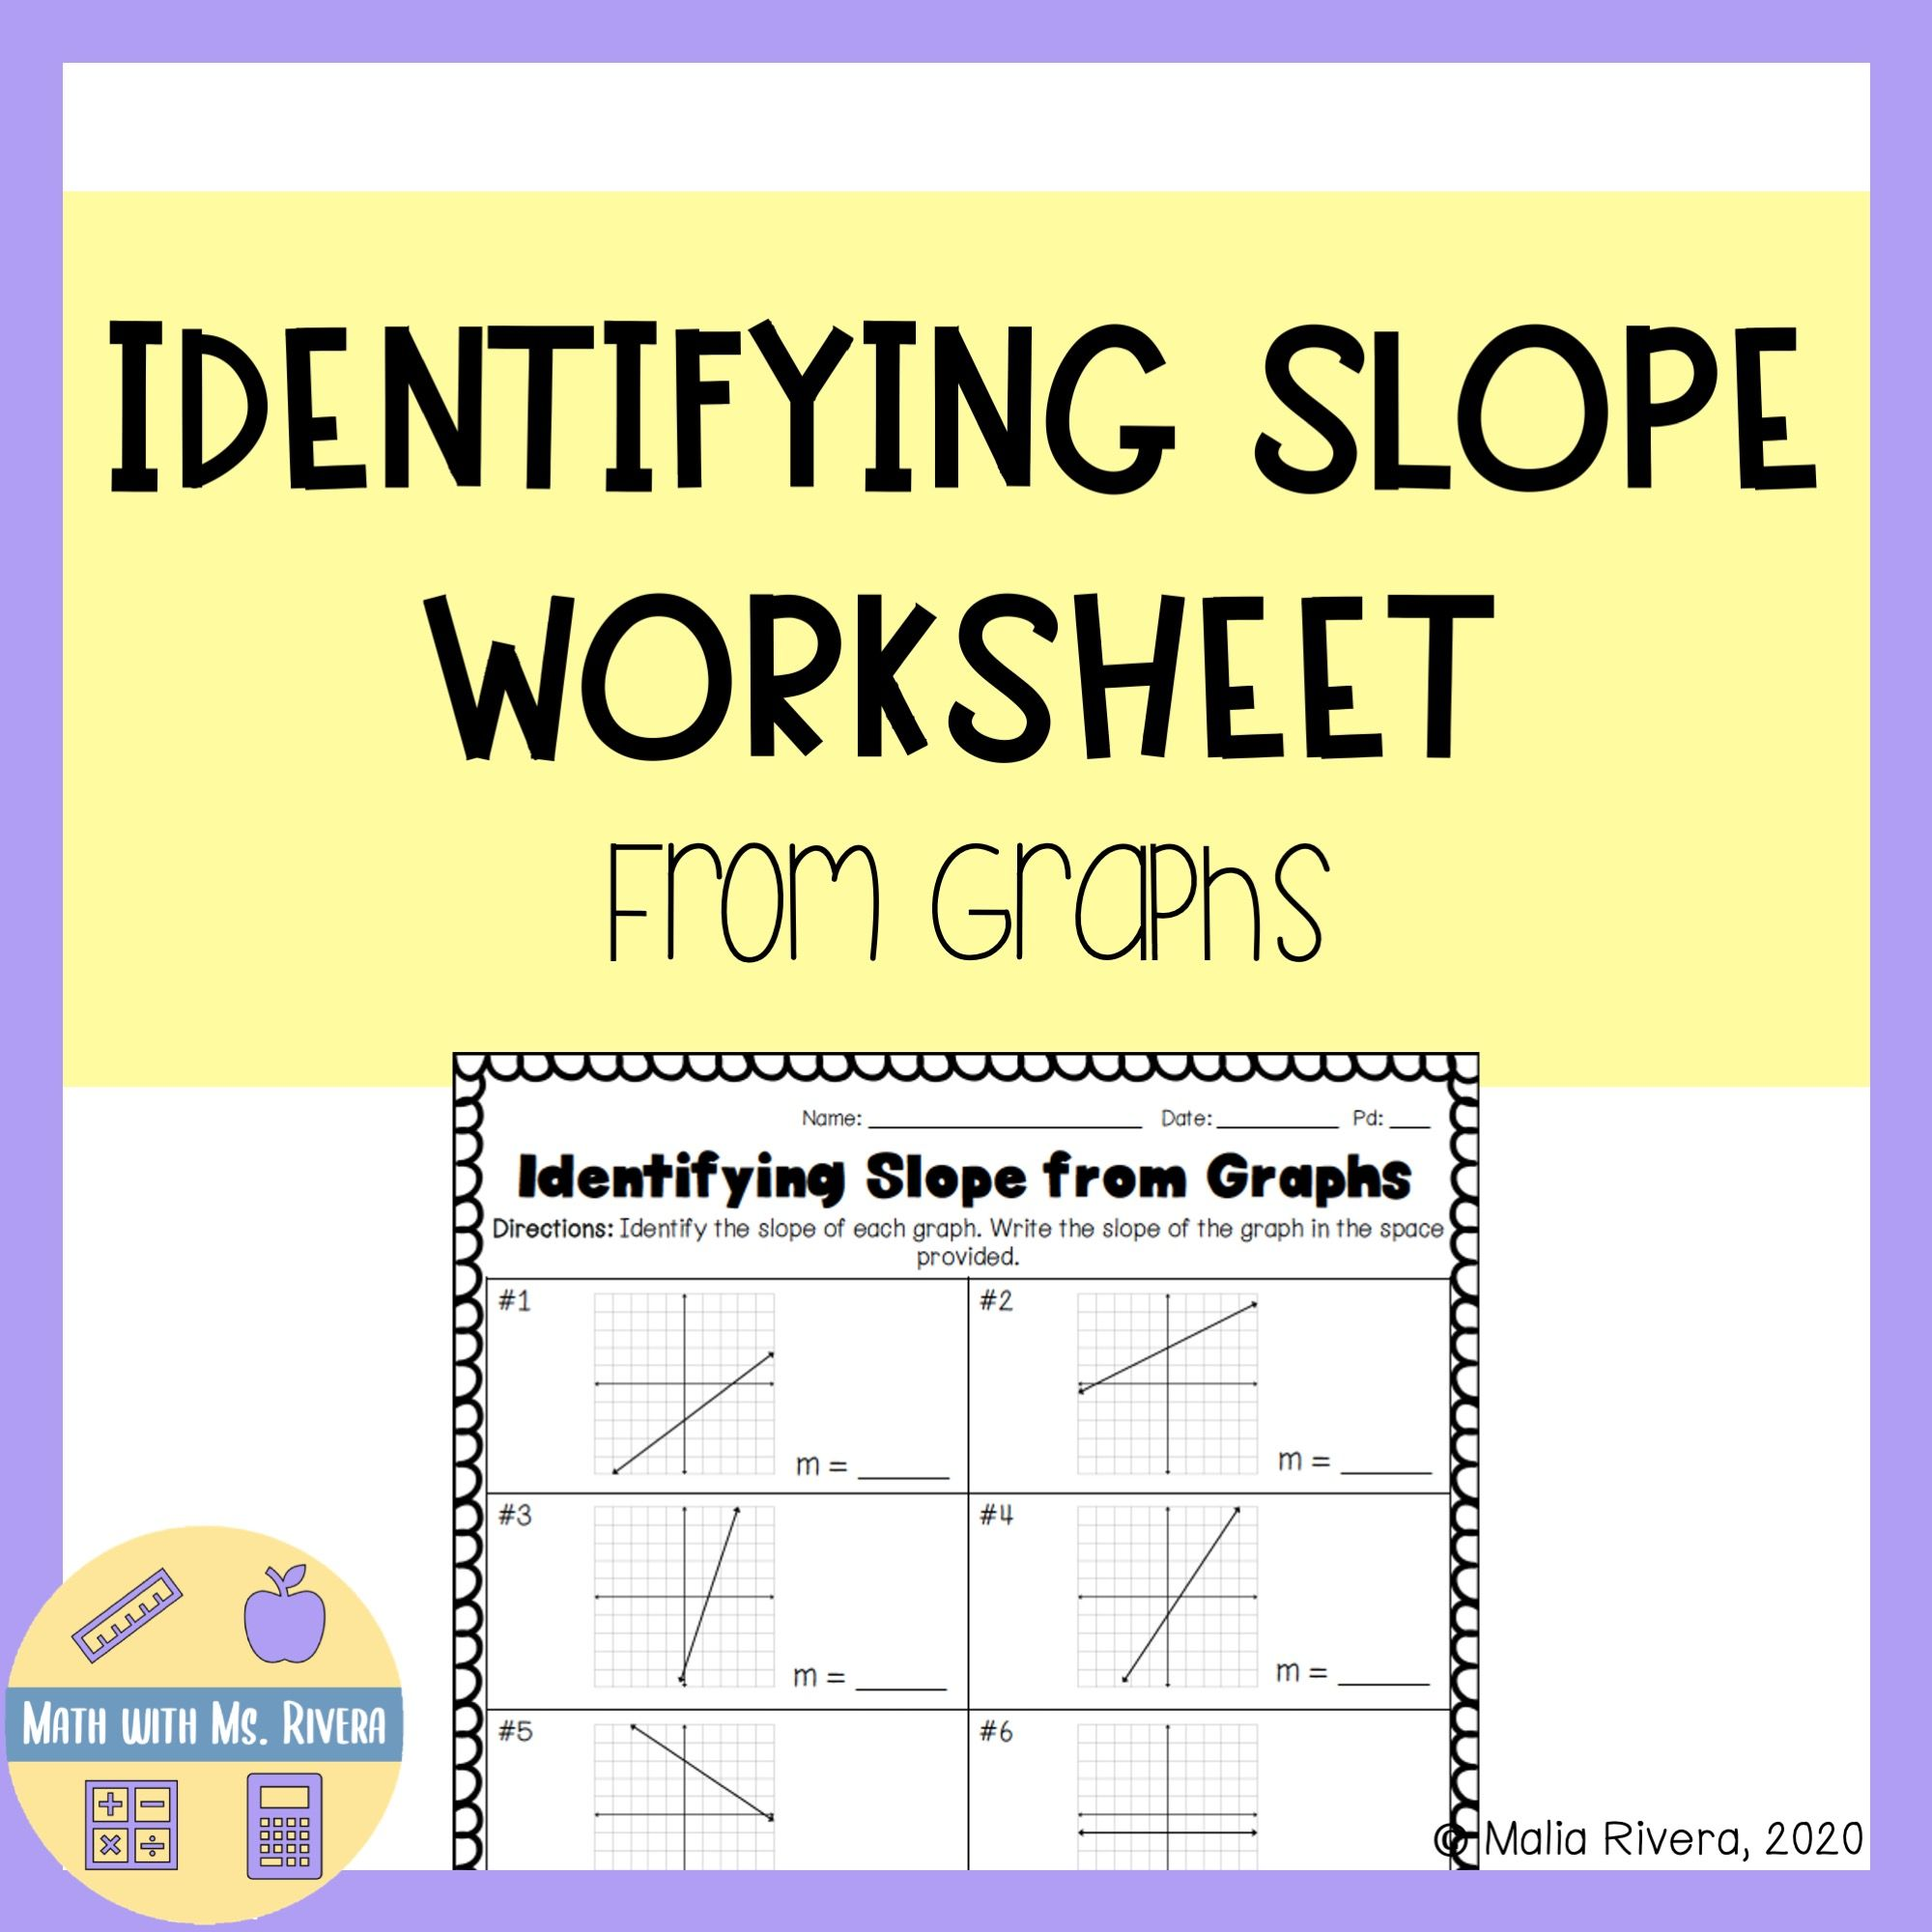 small resolution of Identifying Slope from Graphs Worksheet   Graphing worksheets